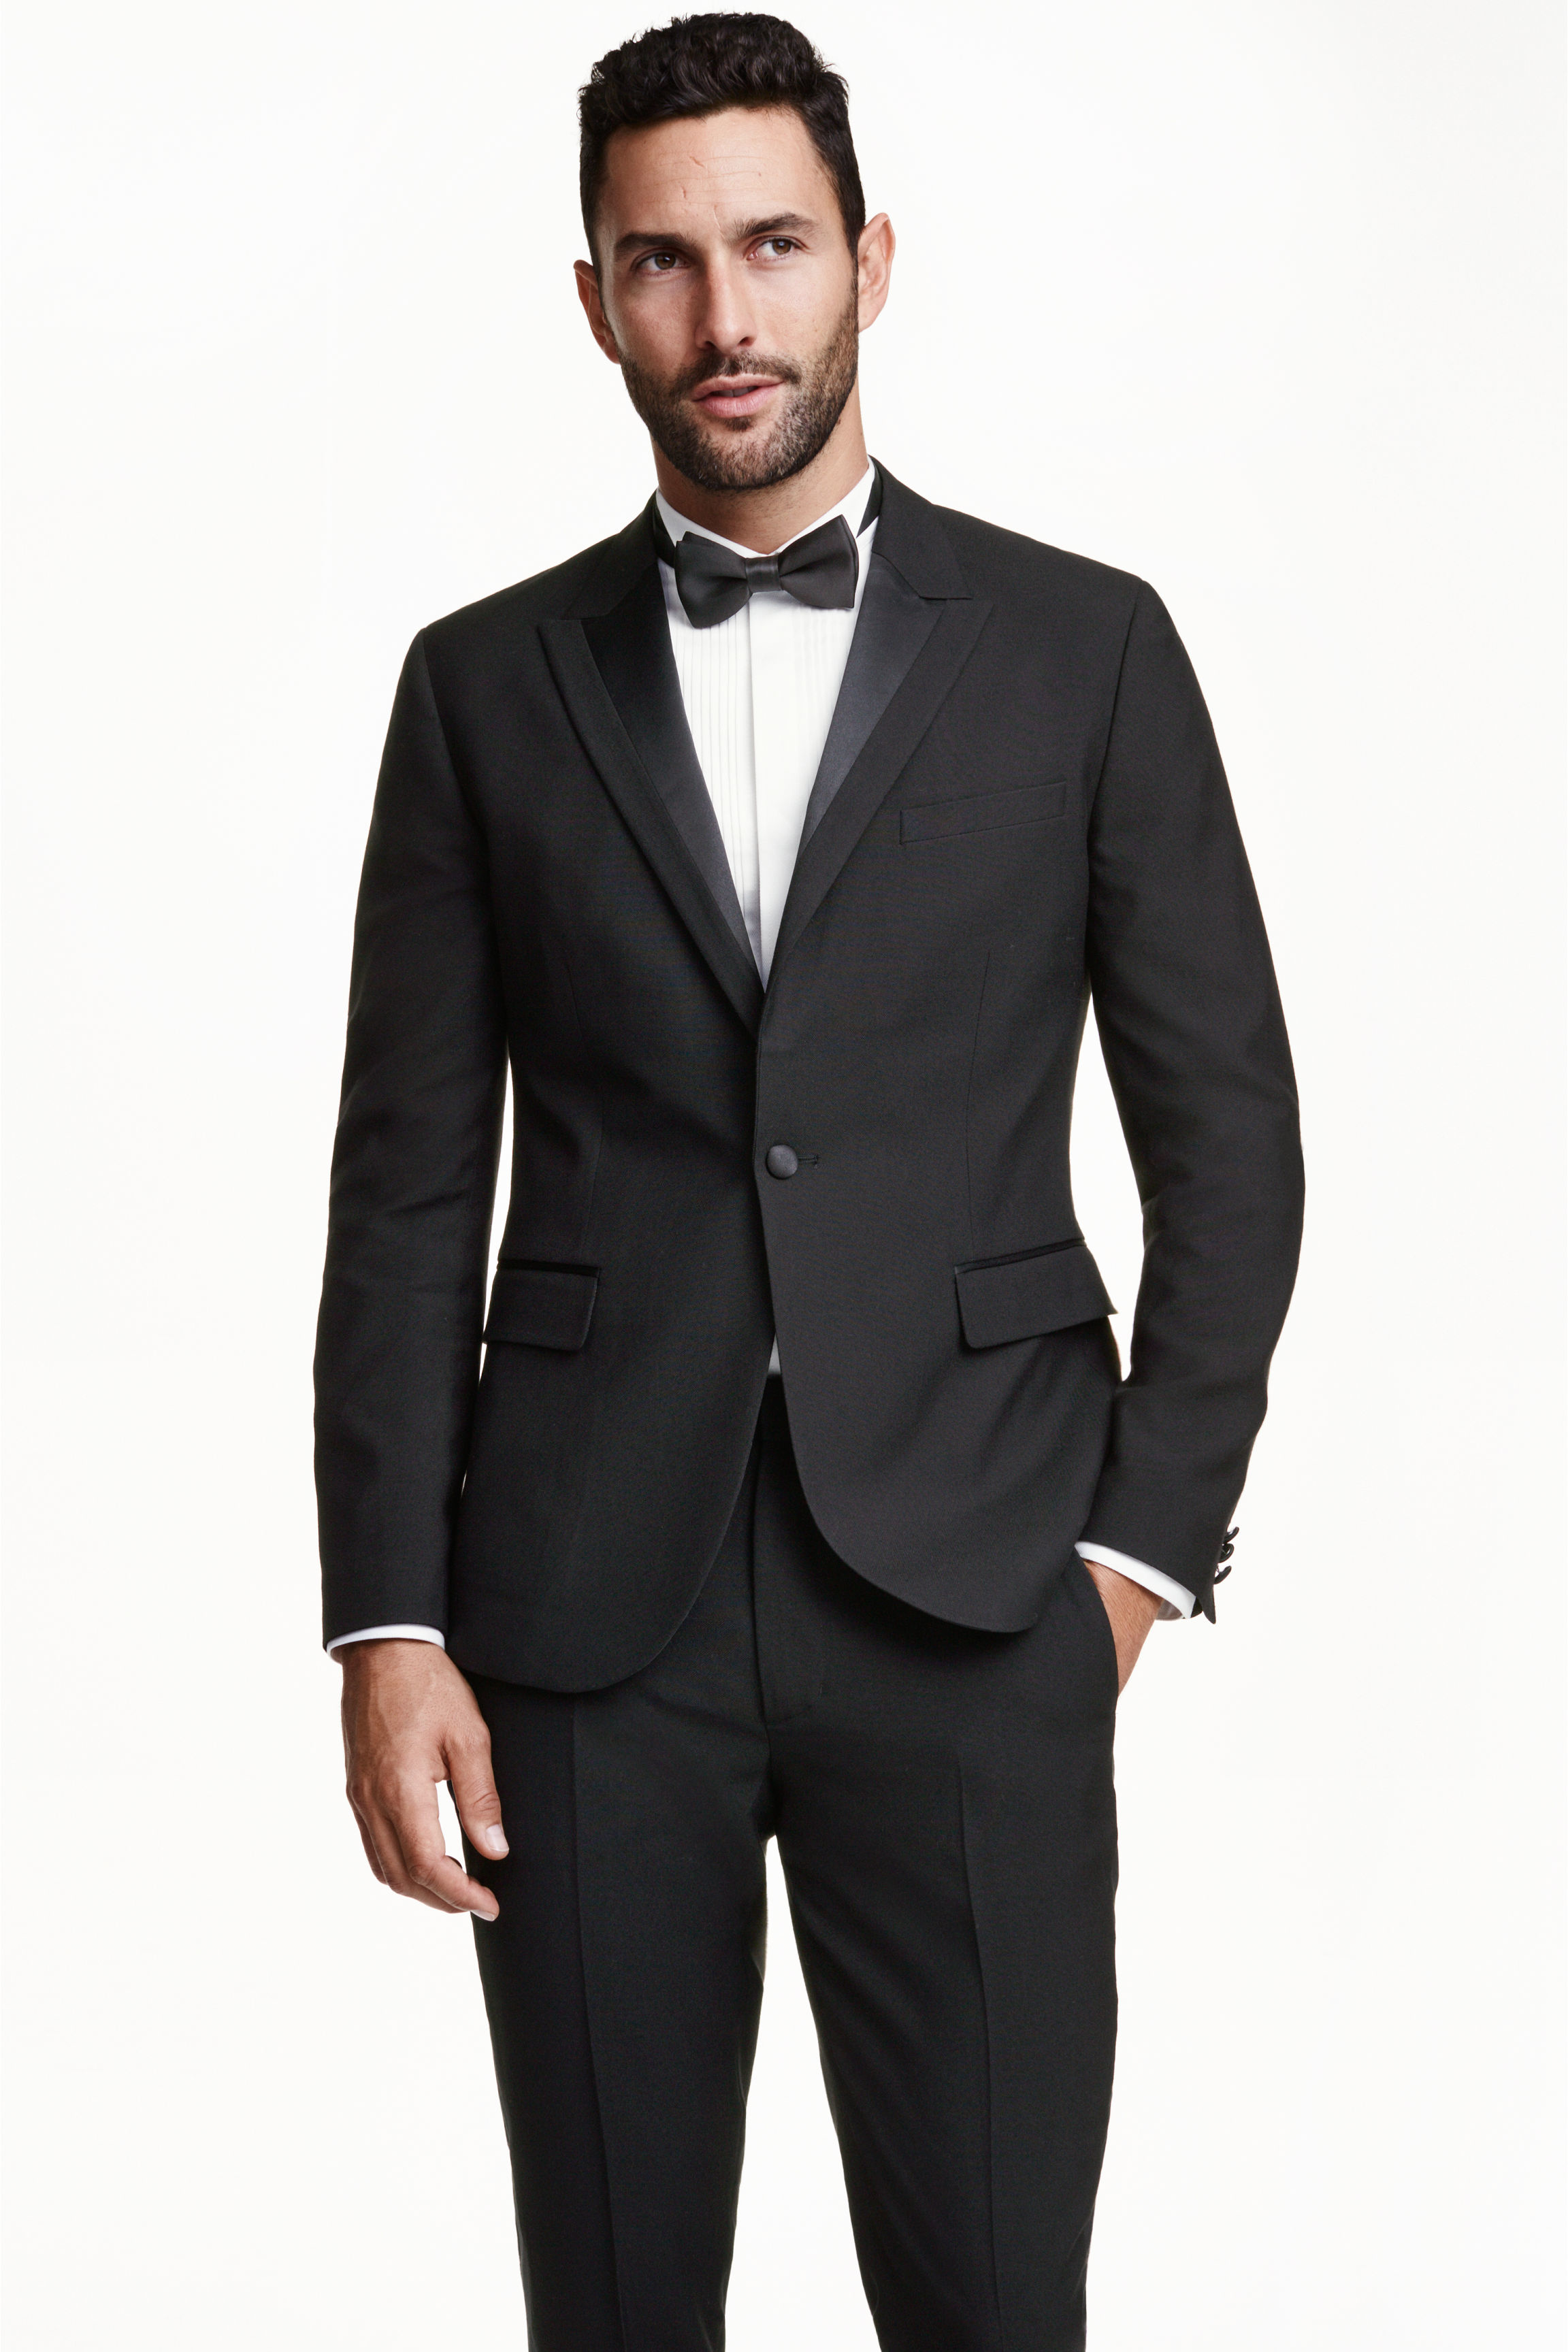 The traditional dinner jacket is made of black wool, with ribbed-silk or satin lapels but without vents. The lapel can either be the peaked lapel as seen in the evening tailcoat, or the shawl lapel associated with a smoking exeezipcoolgetsiu9tq.cf you choose the peaked lapel, it is immaterial whether the jacket is .